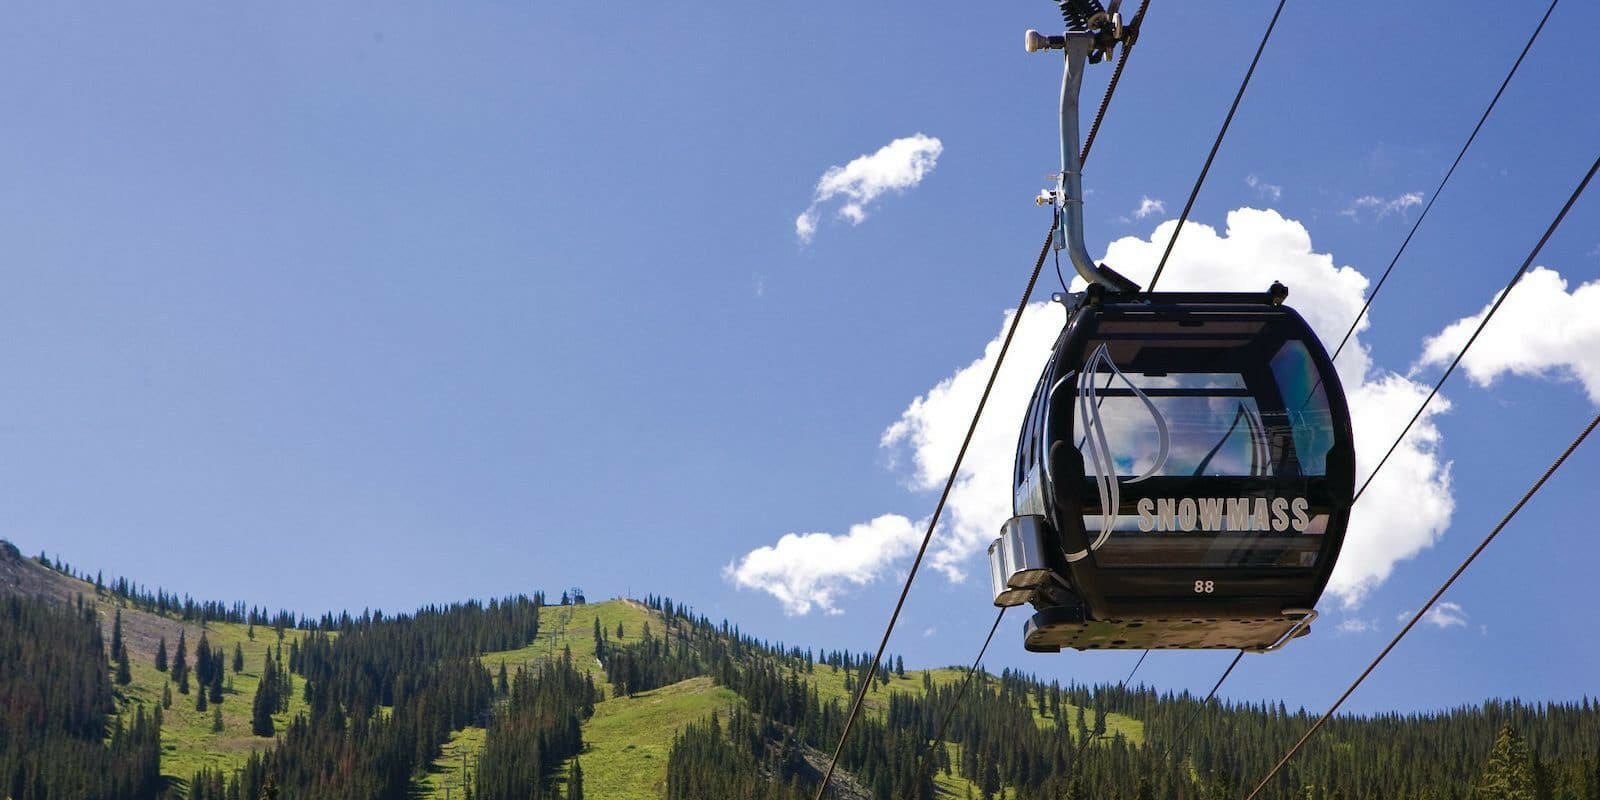 Image of the Elk Camp Gondola at Snowmass in Colorado